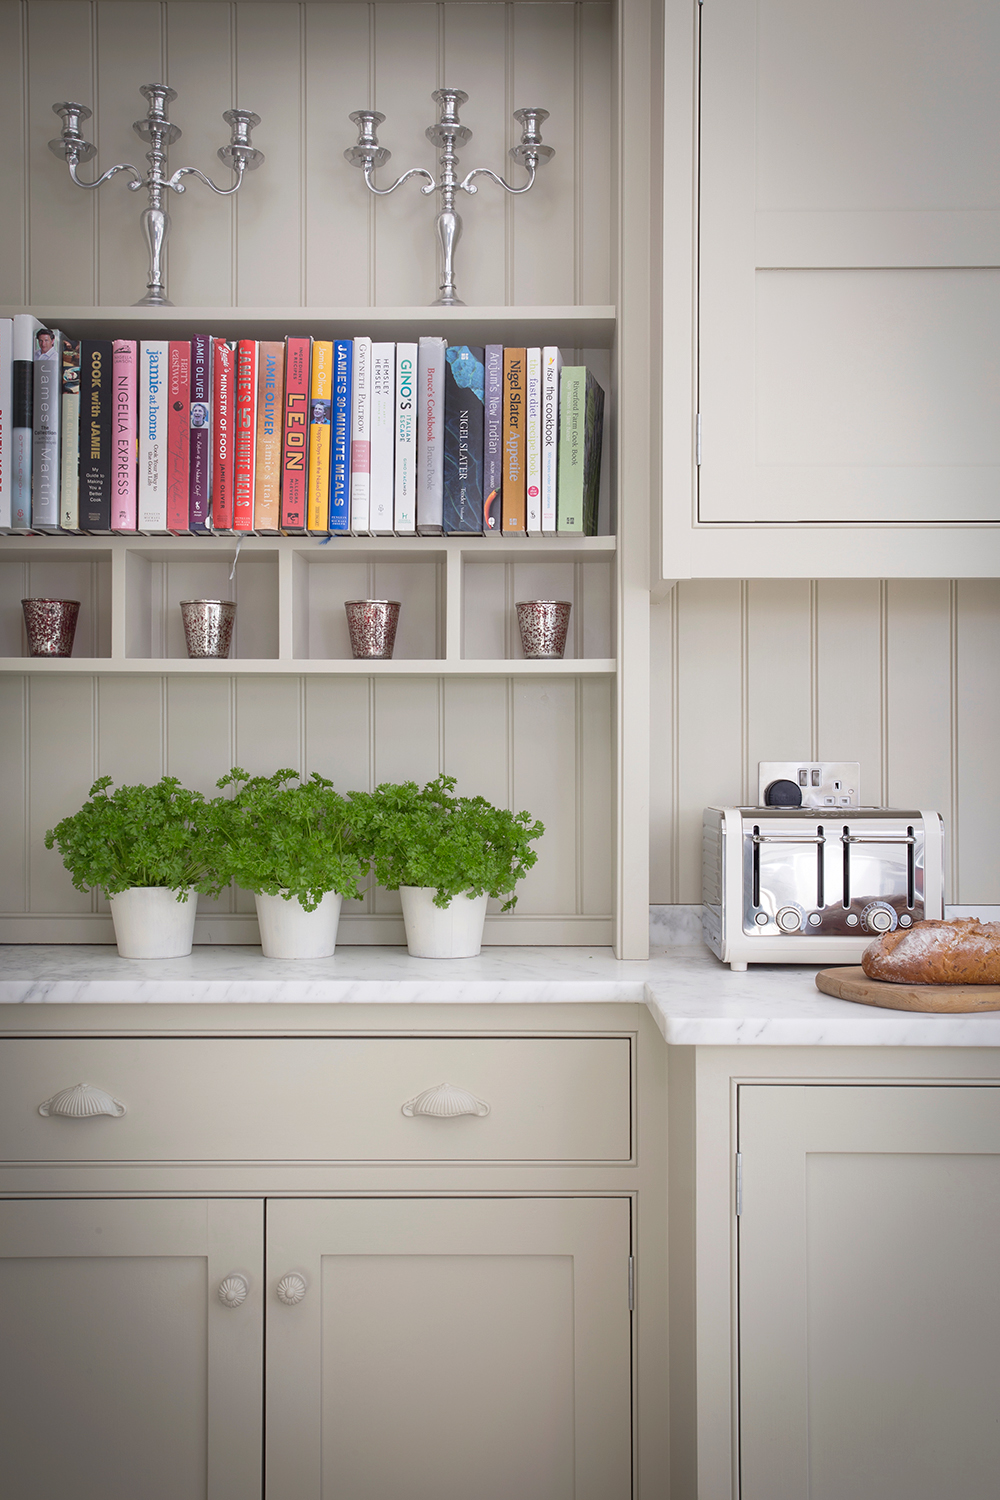 Open shelves with recipe books in Georgian classic kitchen and herbs above carrara marble worktops with a cream toaster.